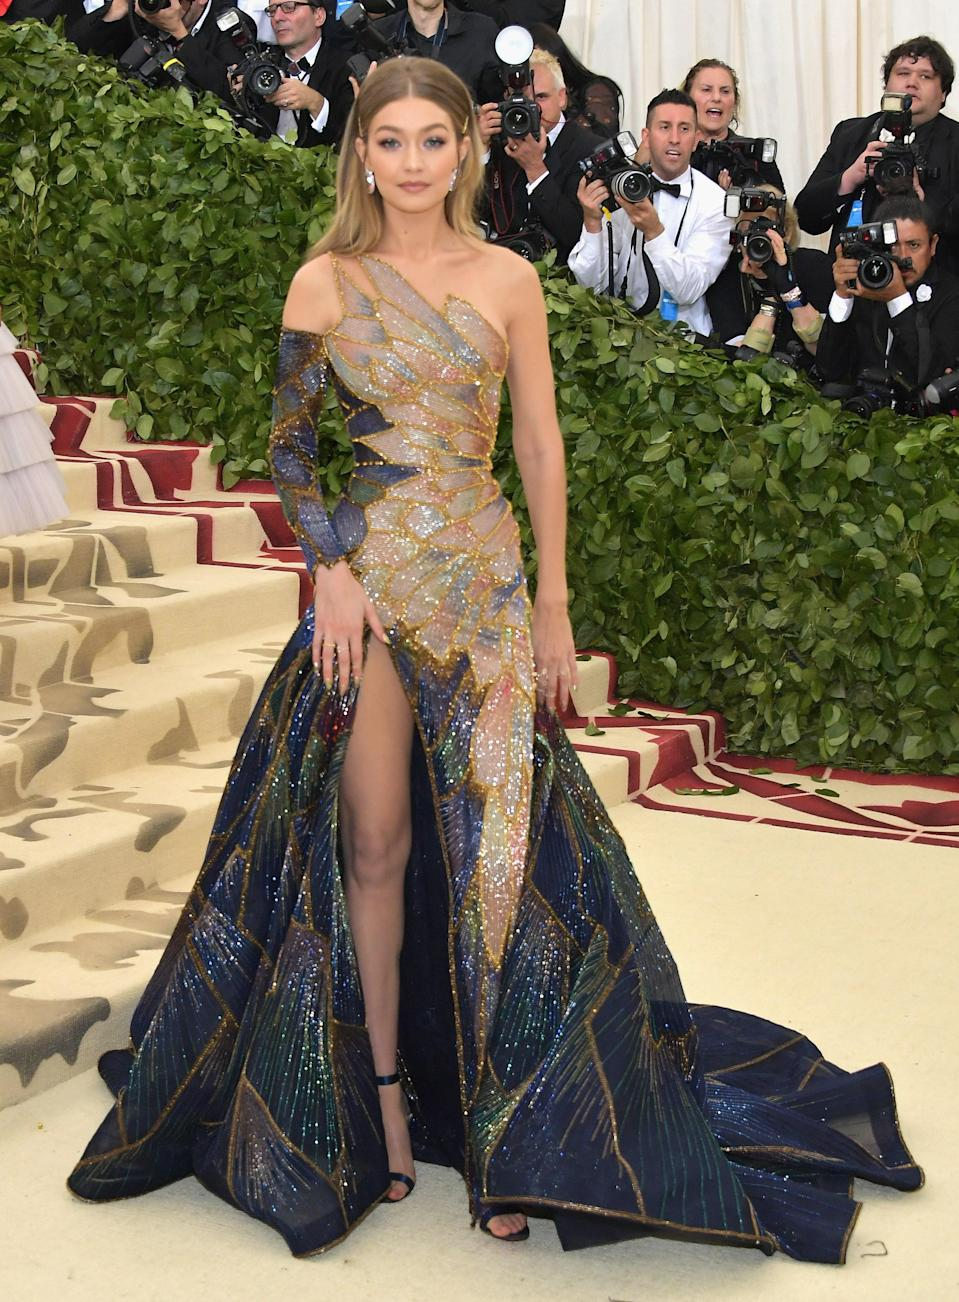 After a year of a very public relationship (and breakup), Gigi stepped out on her own in this gorgeous gown serving Rainbow Fish-realness. The multi-colored pattern along her dress blended into her skin flawlessly.